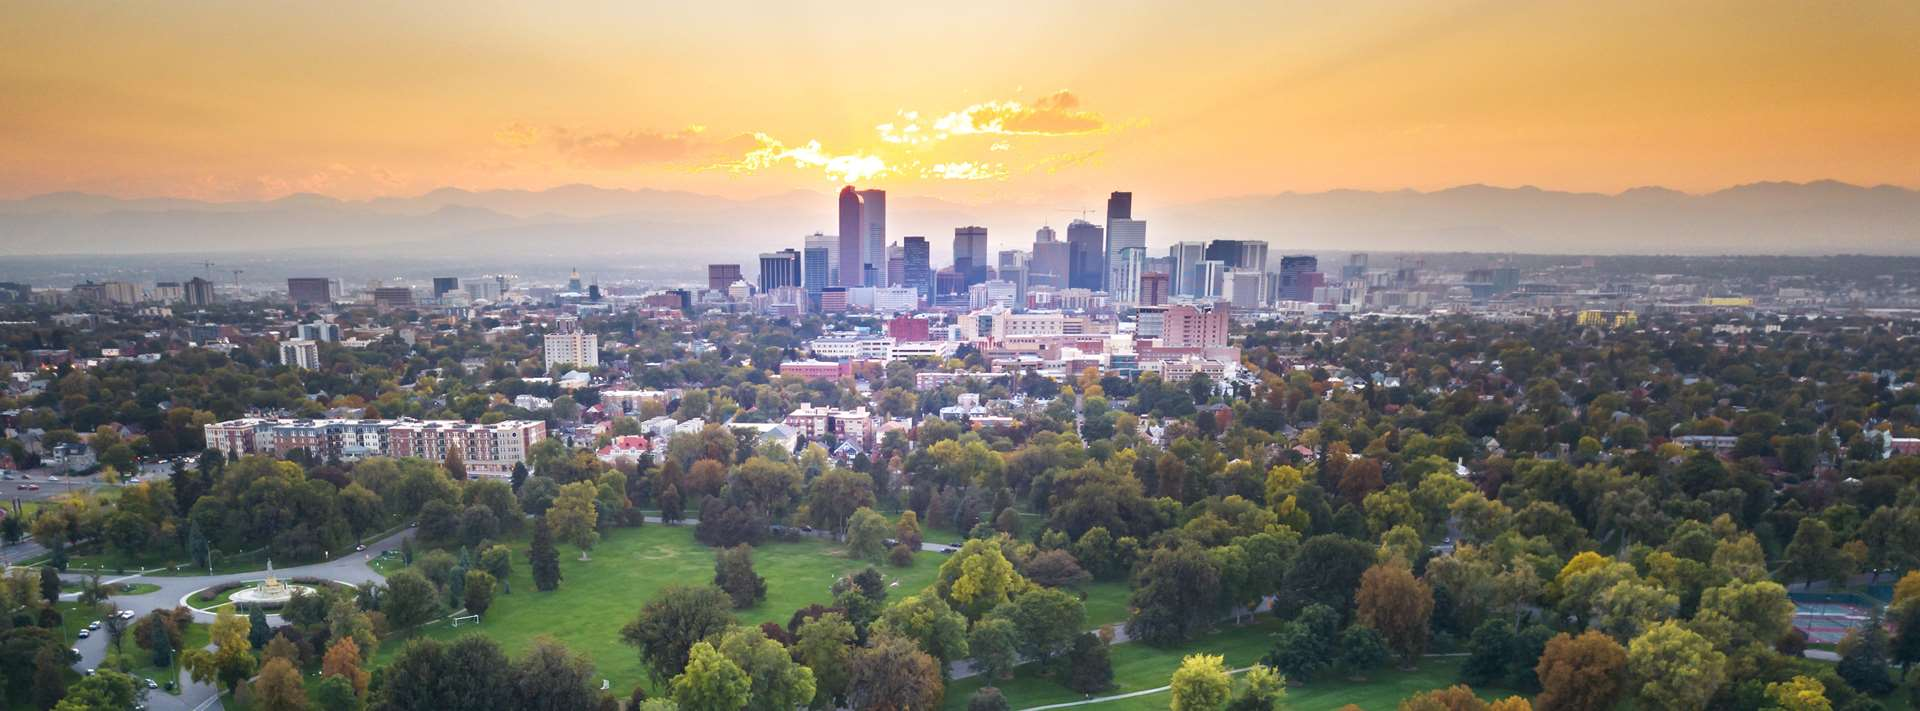 Cheap Flights From Manchester To Denver